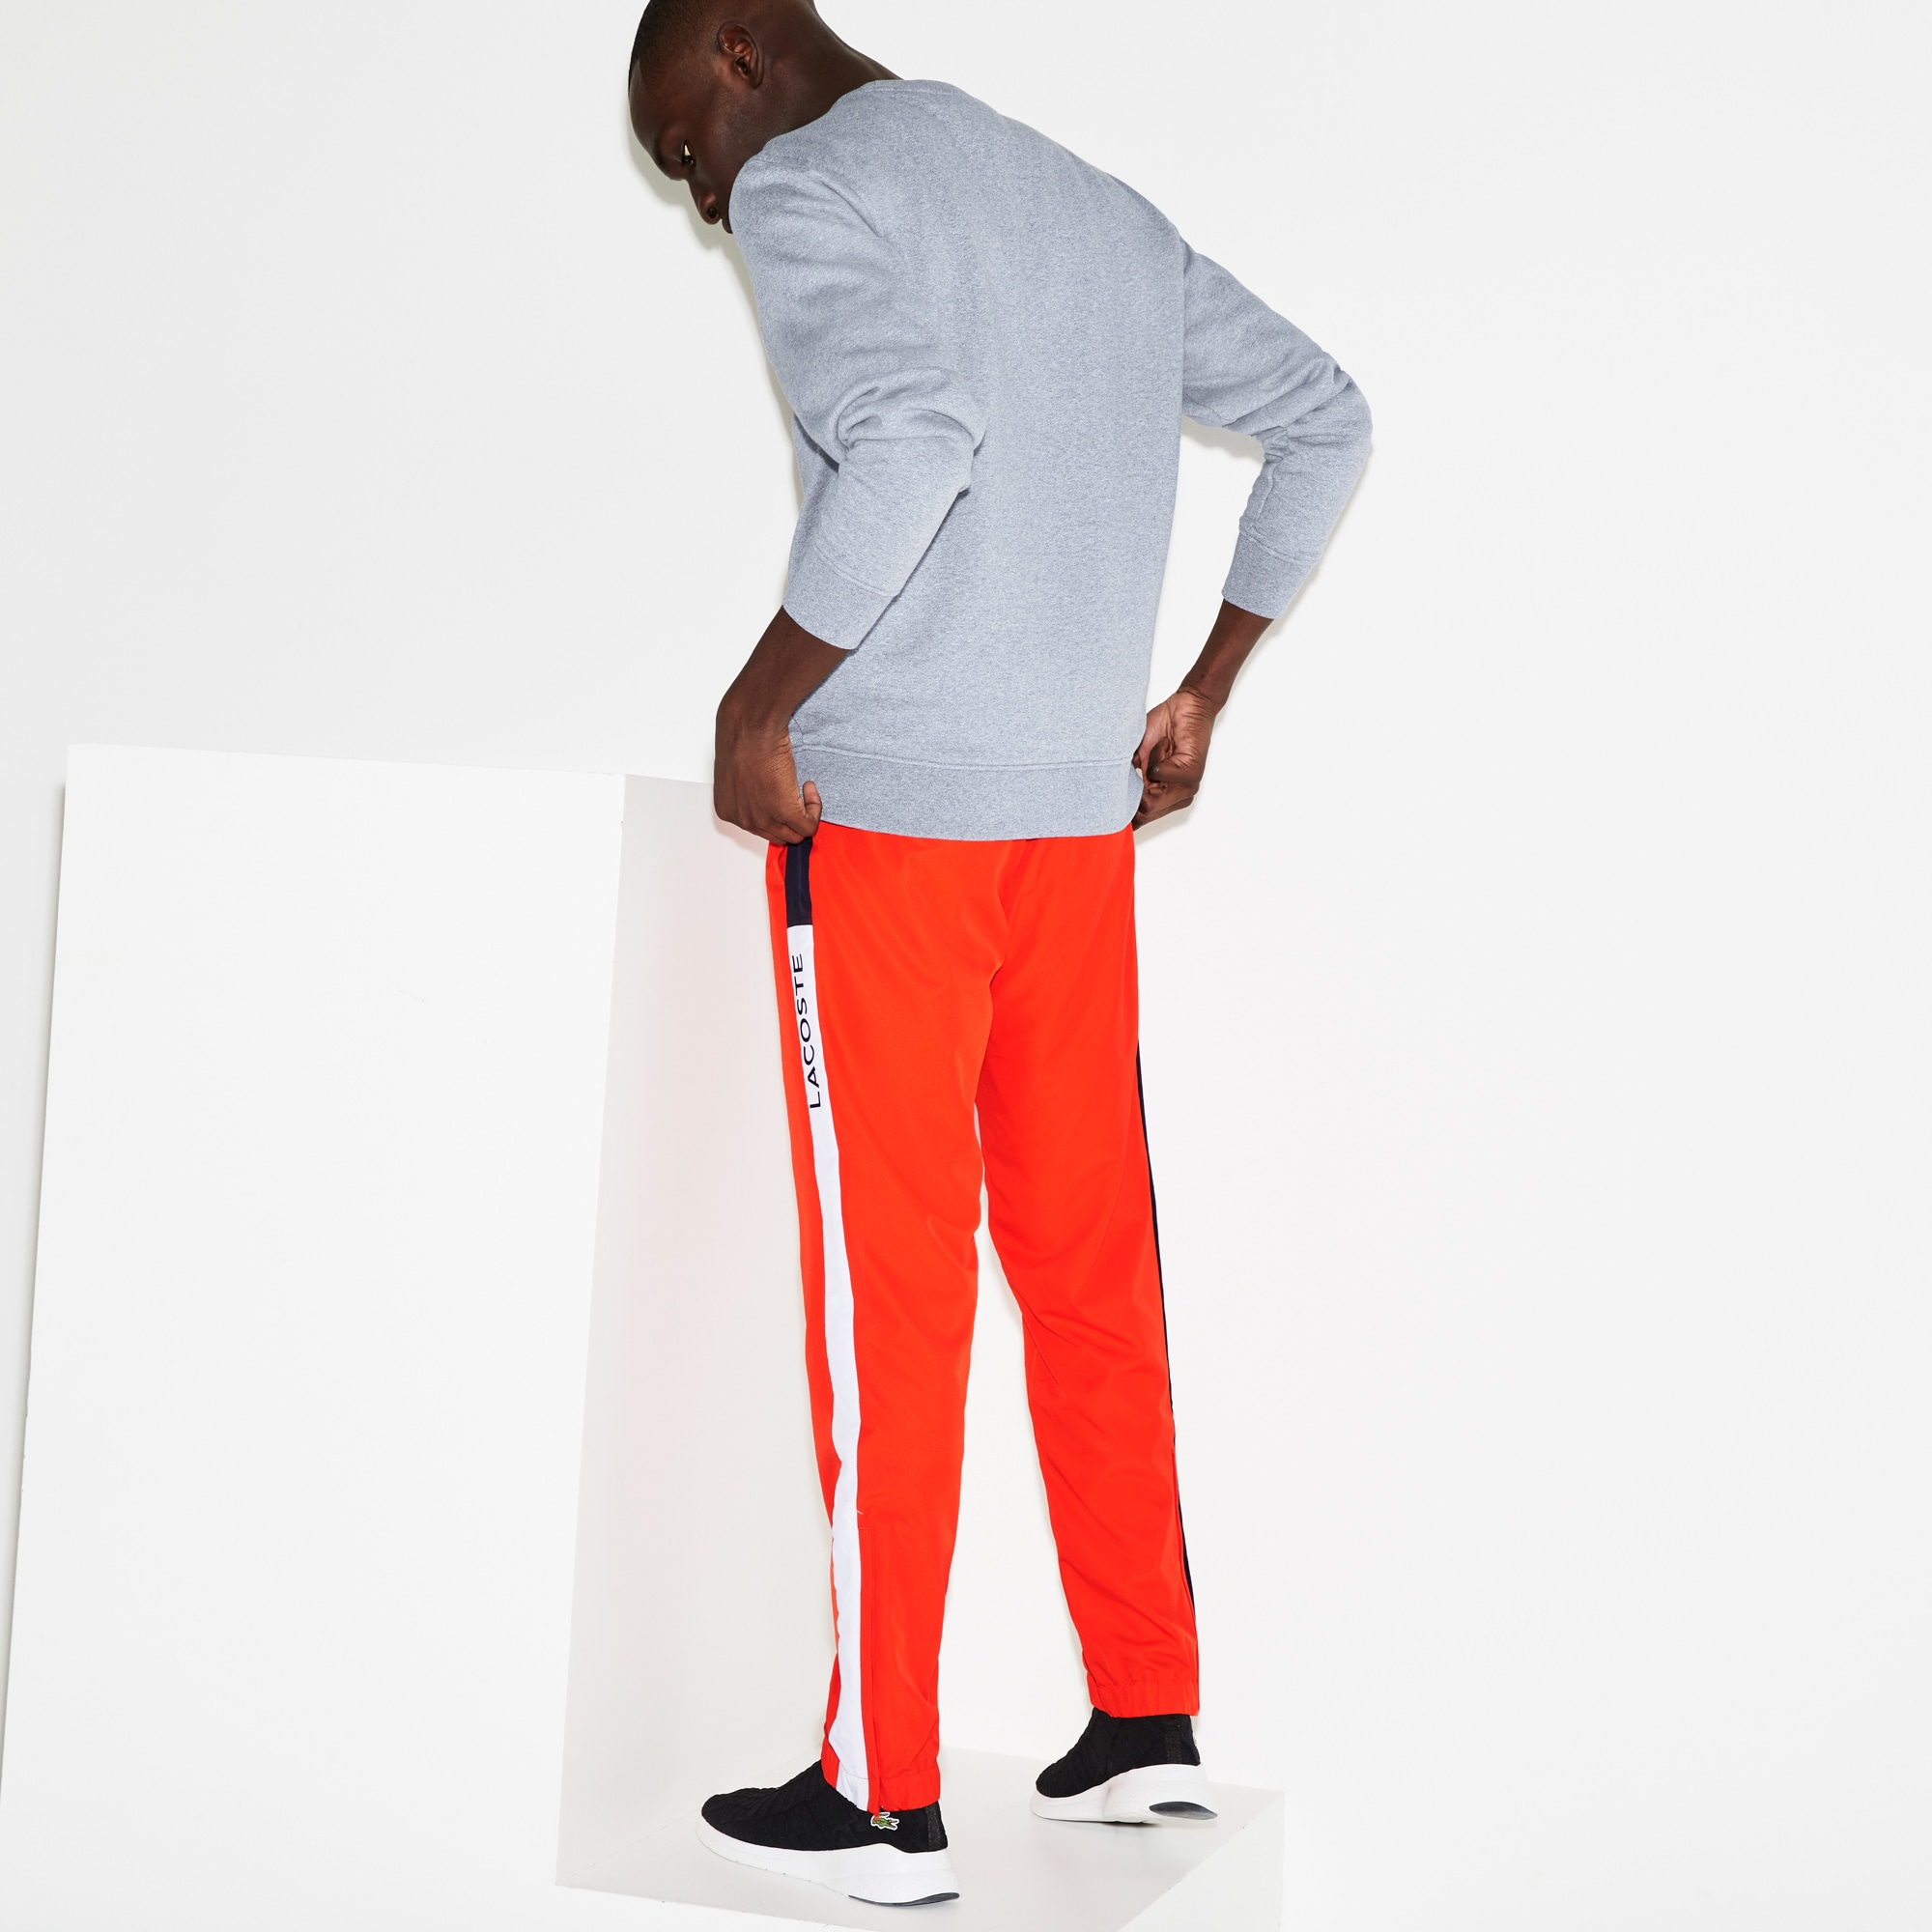 Lacoste SPORT tennis joggingbroek heren colorblock-strepen